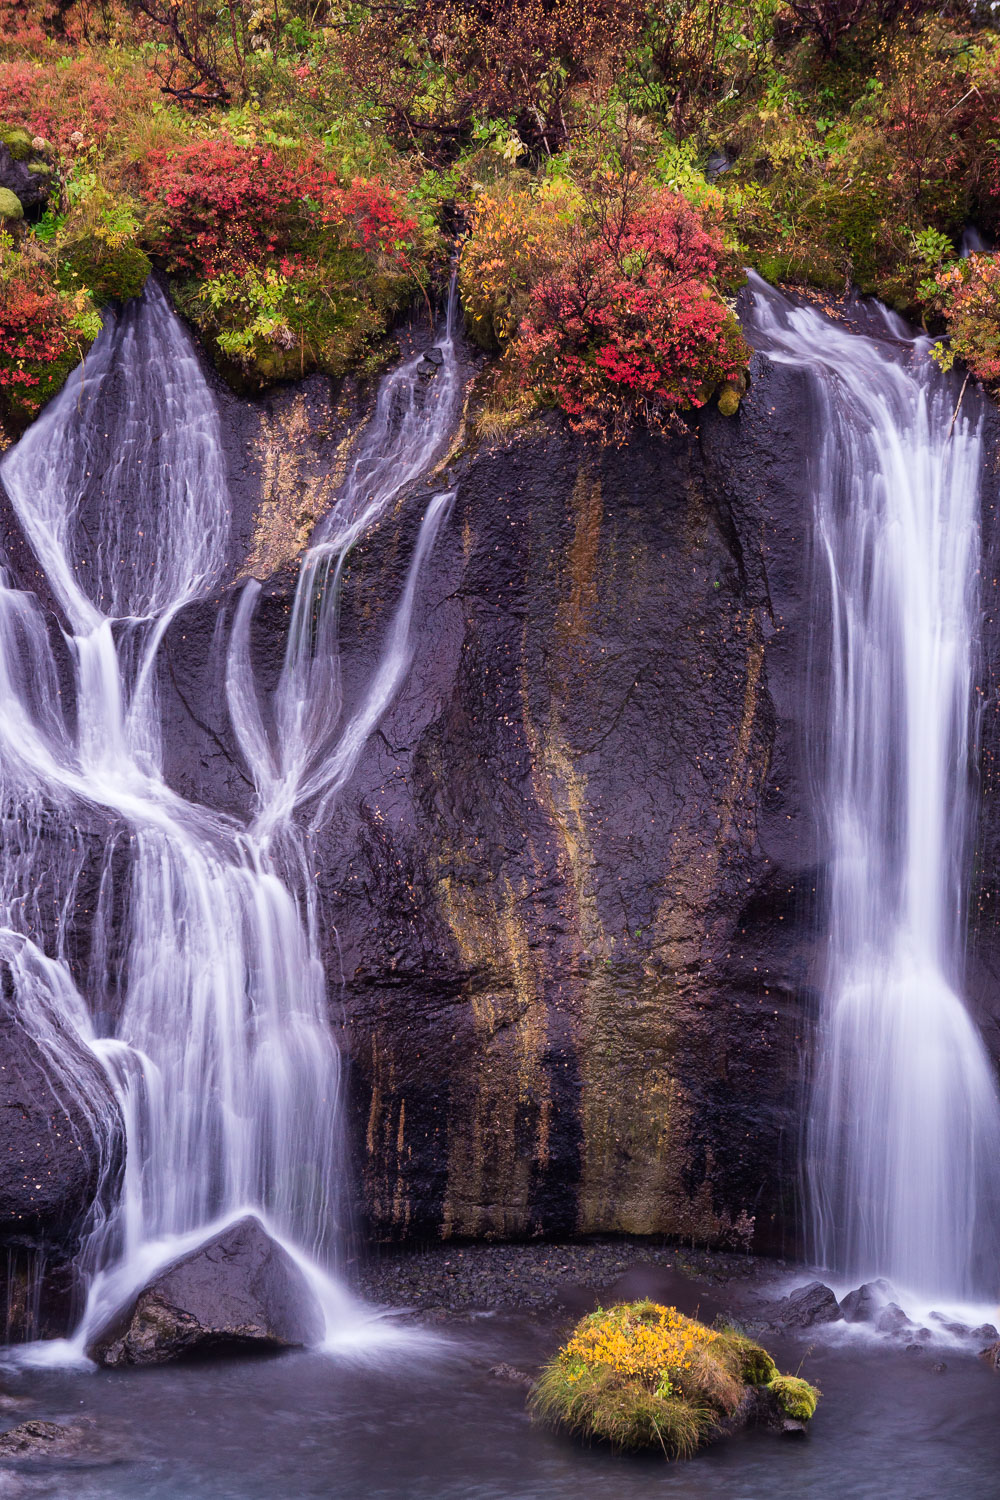 Hraunfosser Waterfall, Iceland - 10 Dos and Don'ts for Mastering Your Tripod